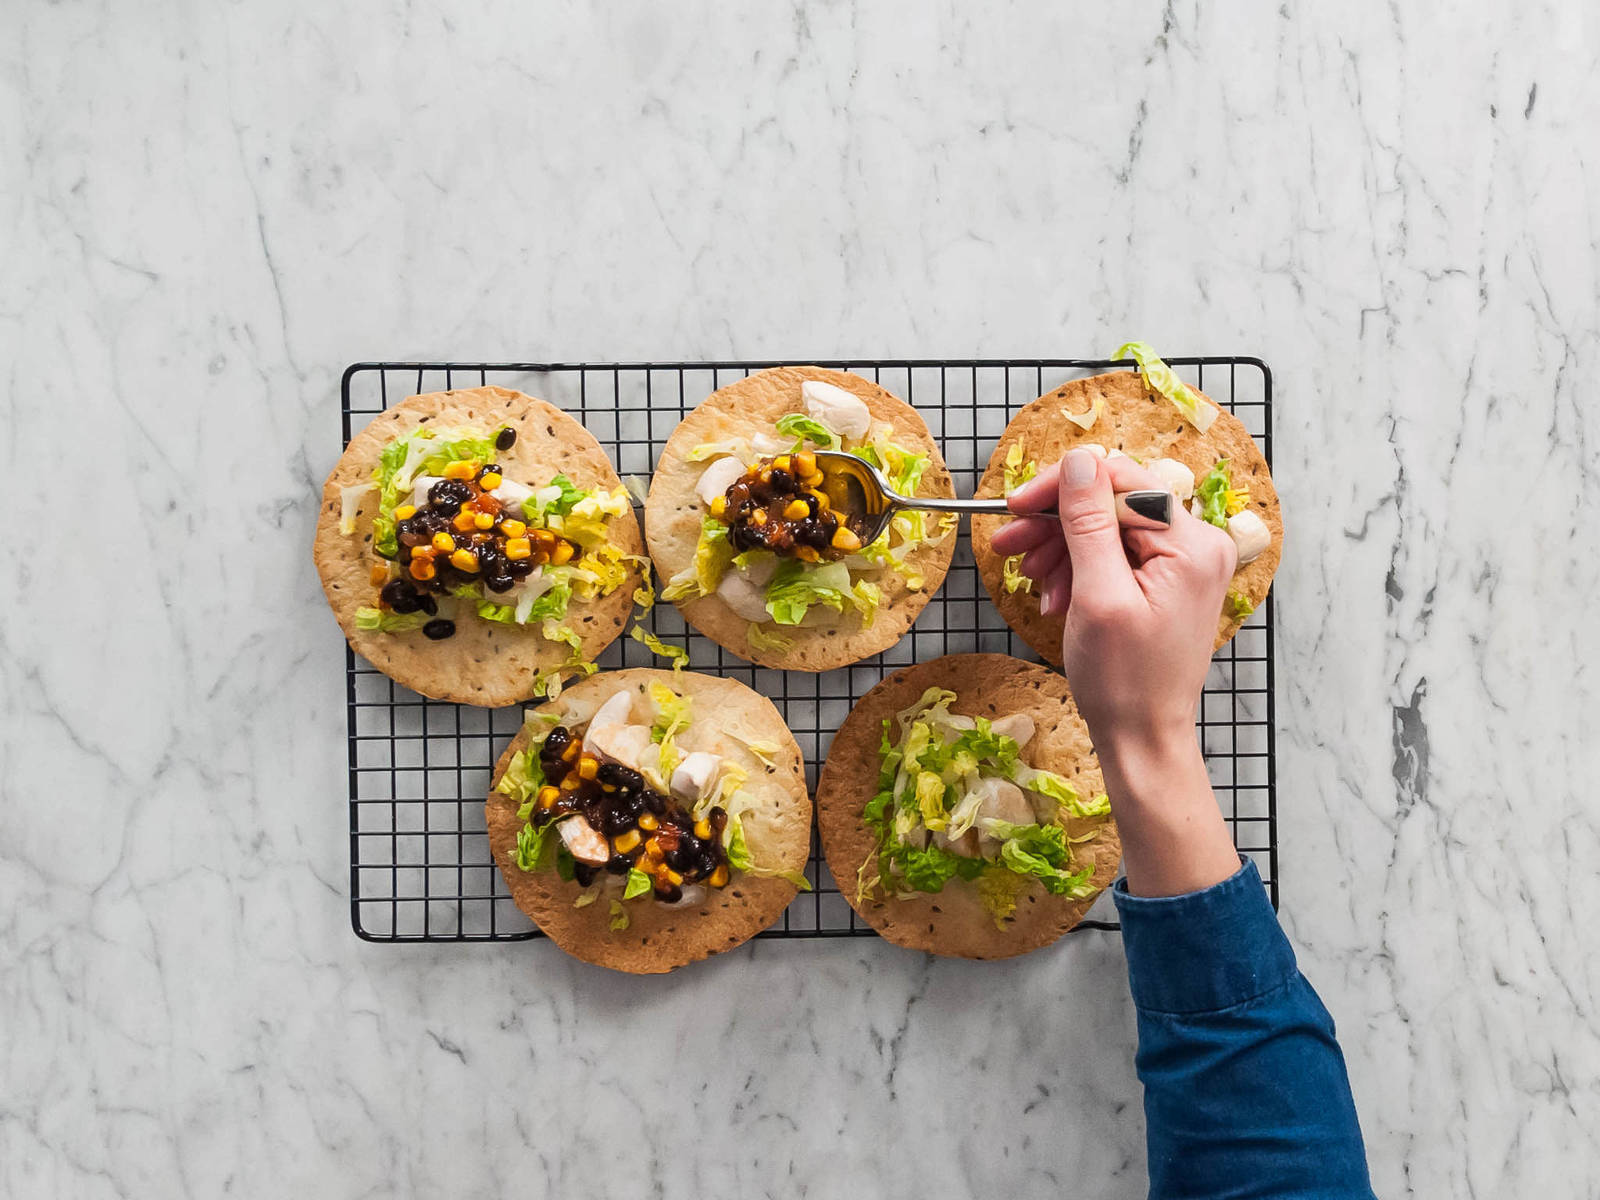 Top each tostada evenly with chicken, lettuce, and salsa mixture. Enjoy!